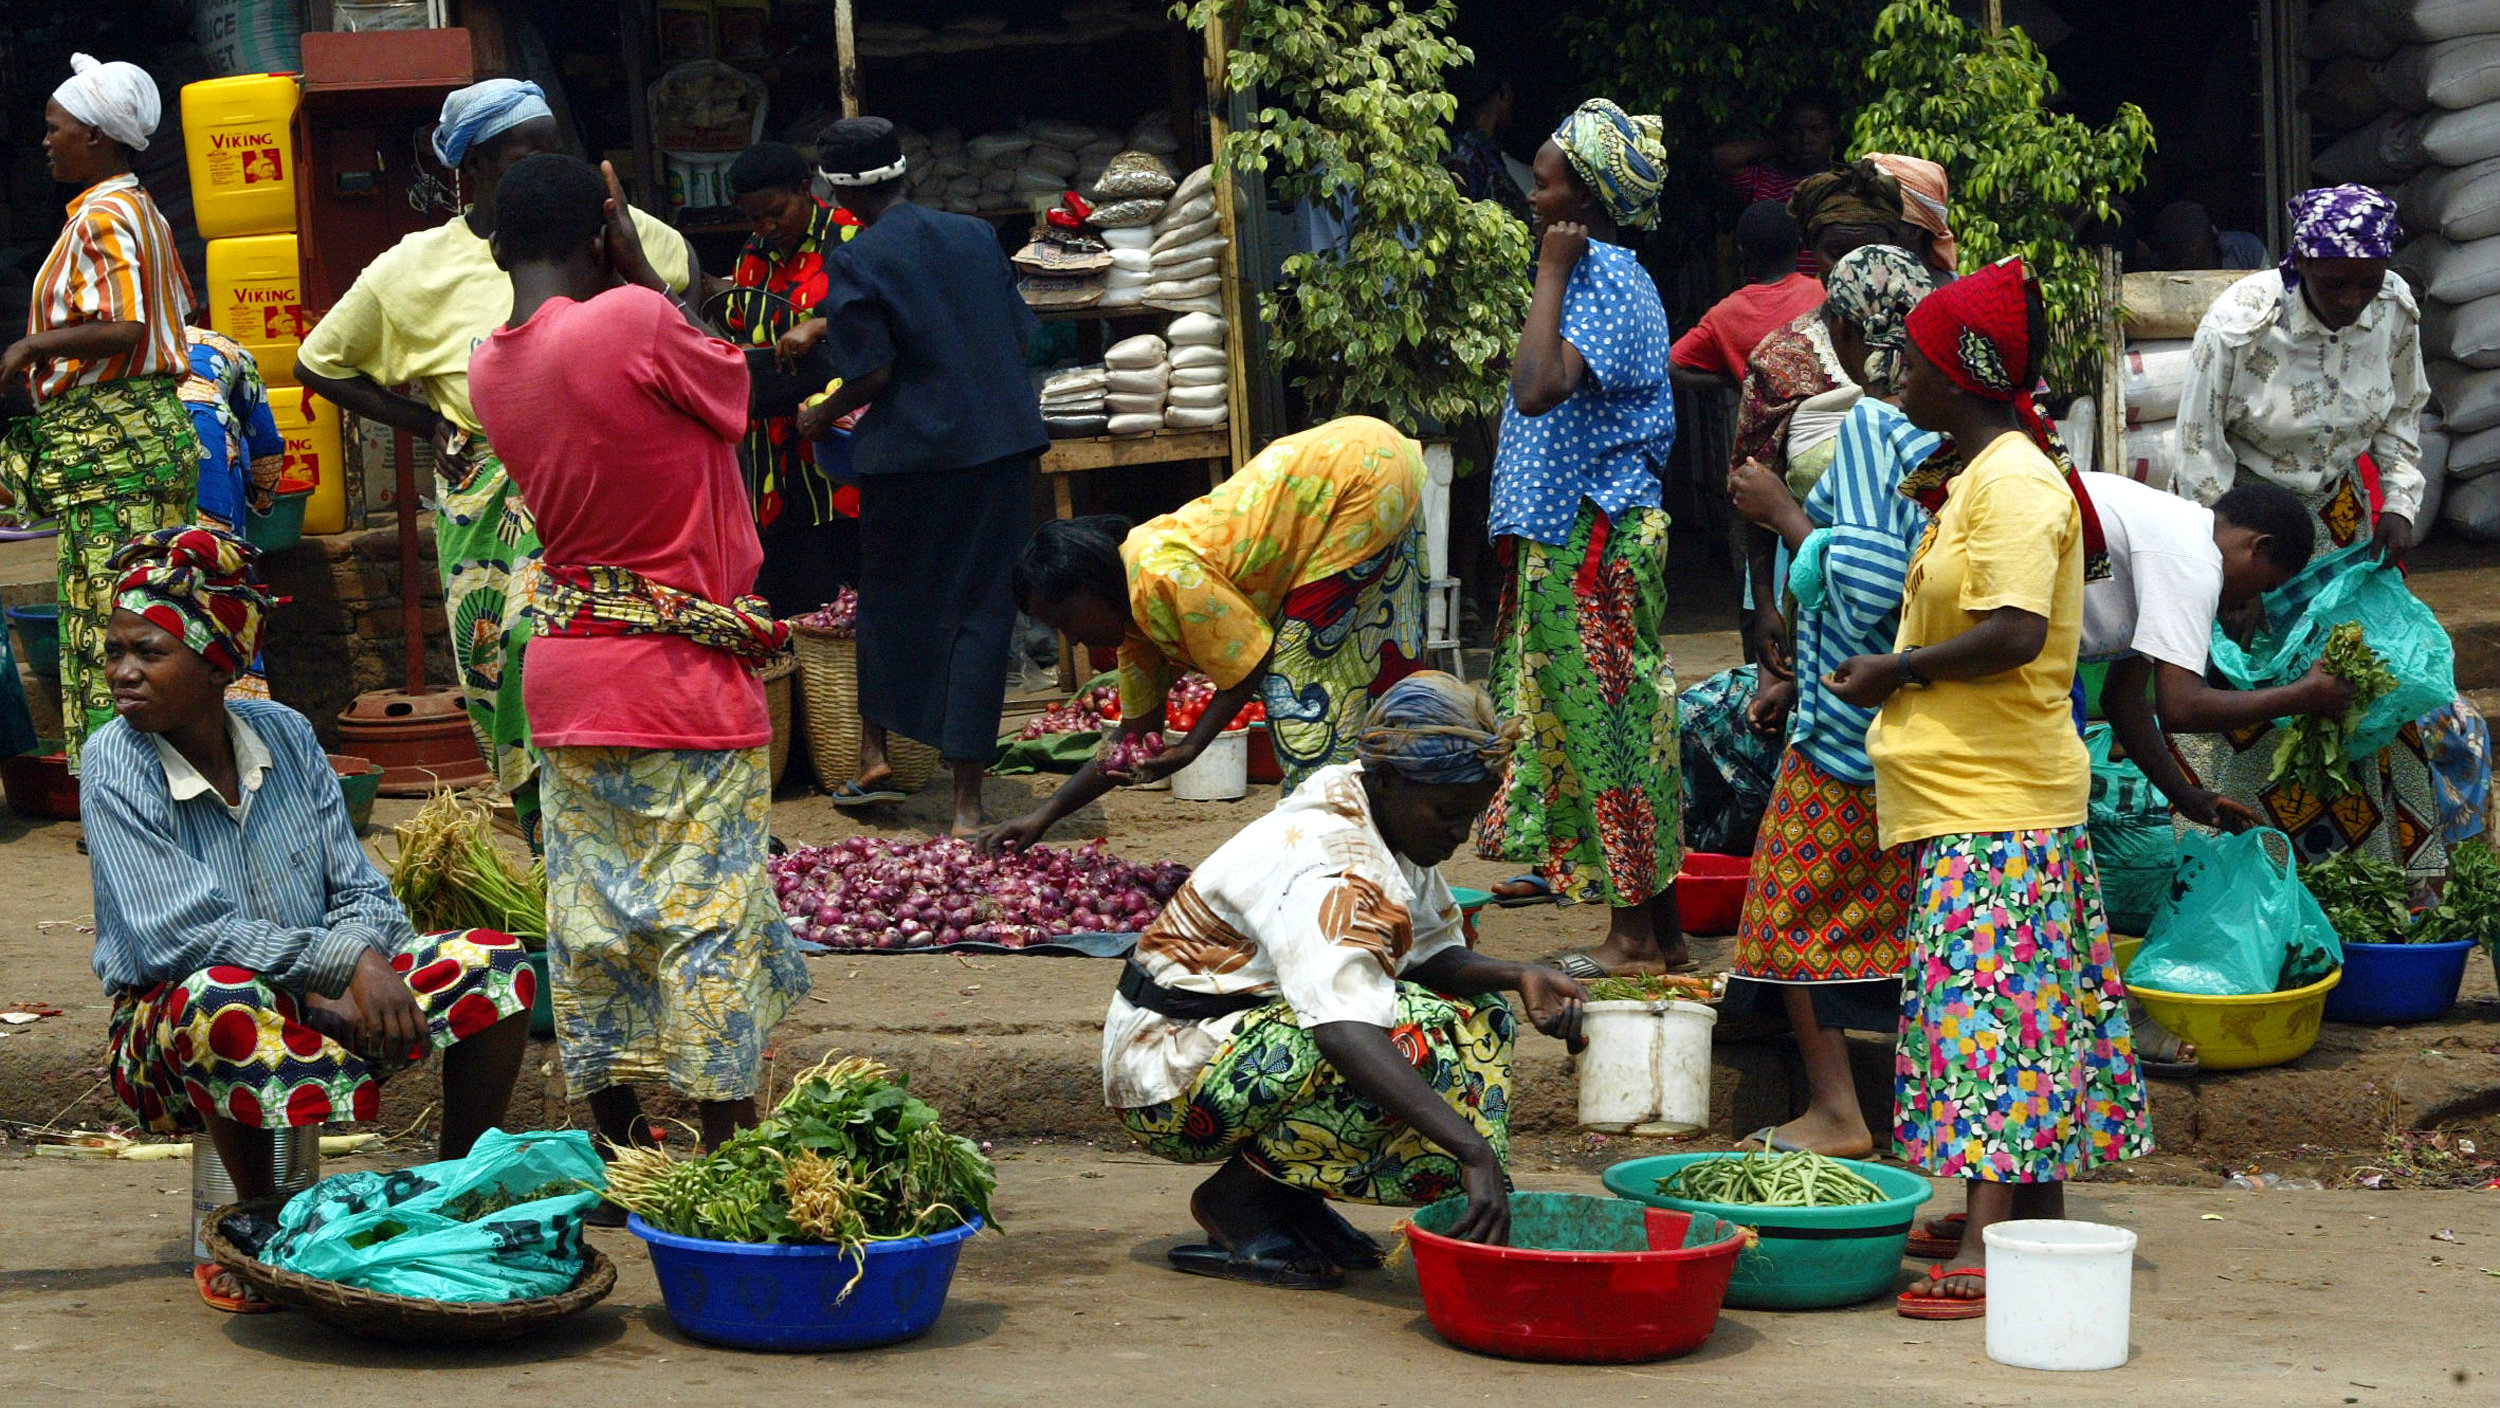 Rwandan women work in a market place in the Rwandan capital Kigali, August 20, 2003. REUTERS/Antony Njuguna